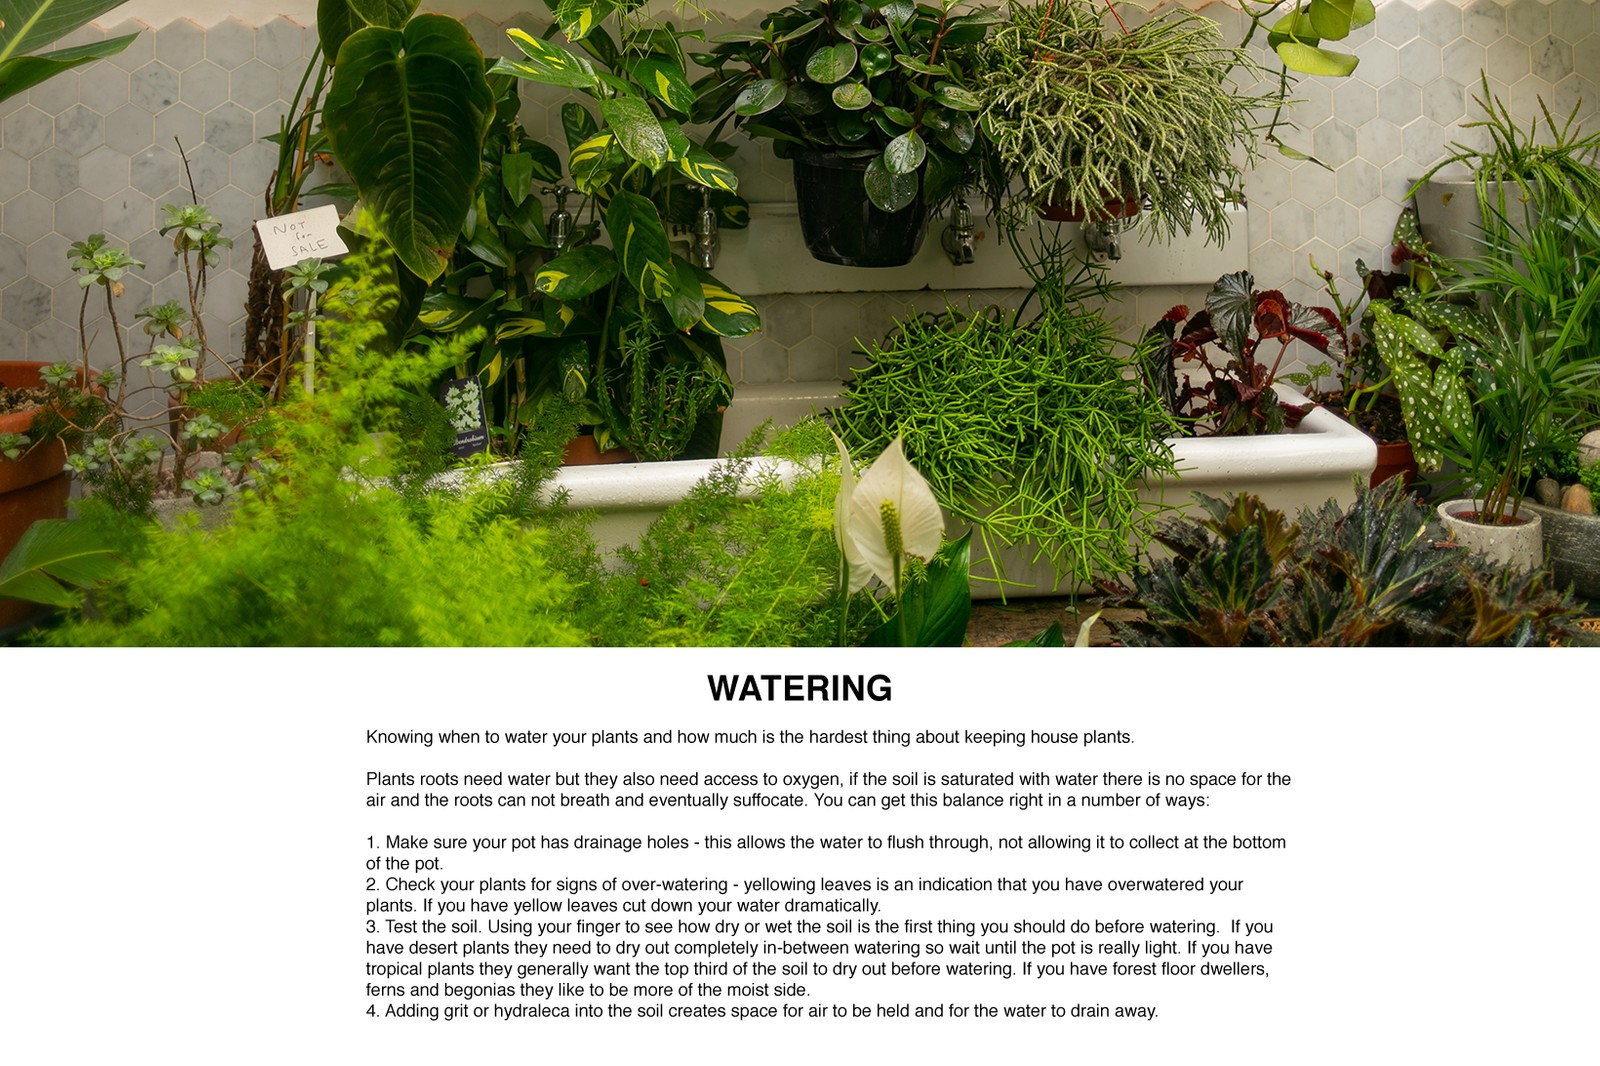 House Plant Care Guide Conservatory Archive London PRICK Cacti Succulents Caring for Plants Aftercare Plantfluencer PlantSOS Gynelle Leon Dandy Farmer Matthew Puntigam Fay Davies